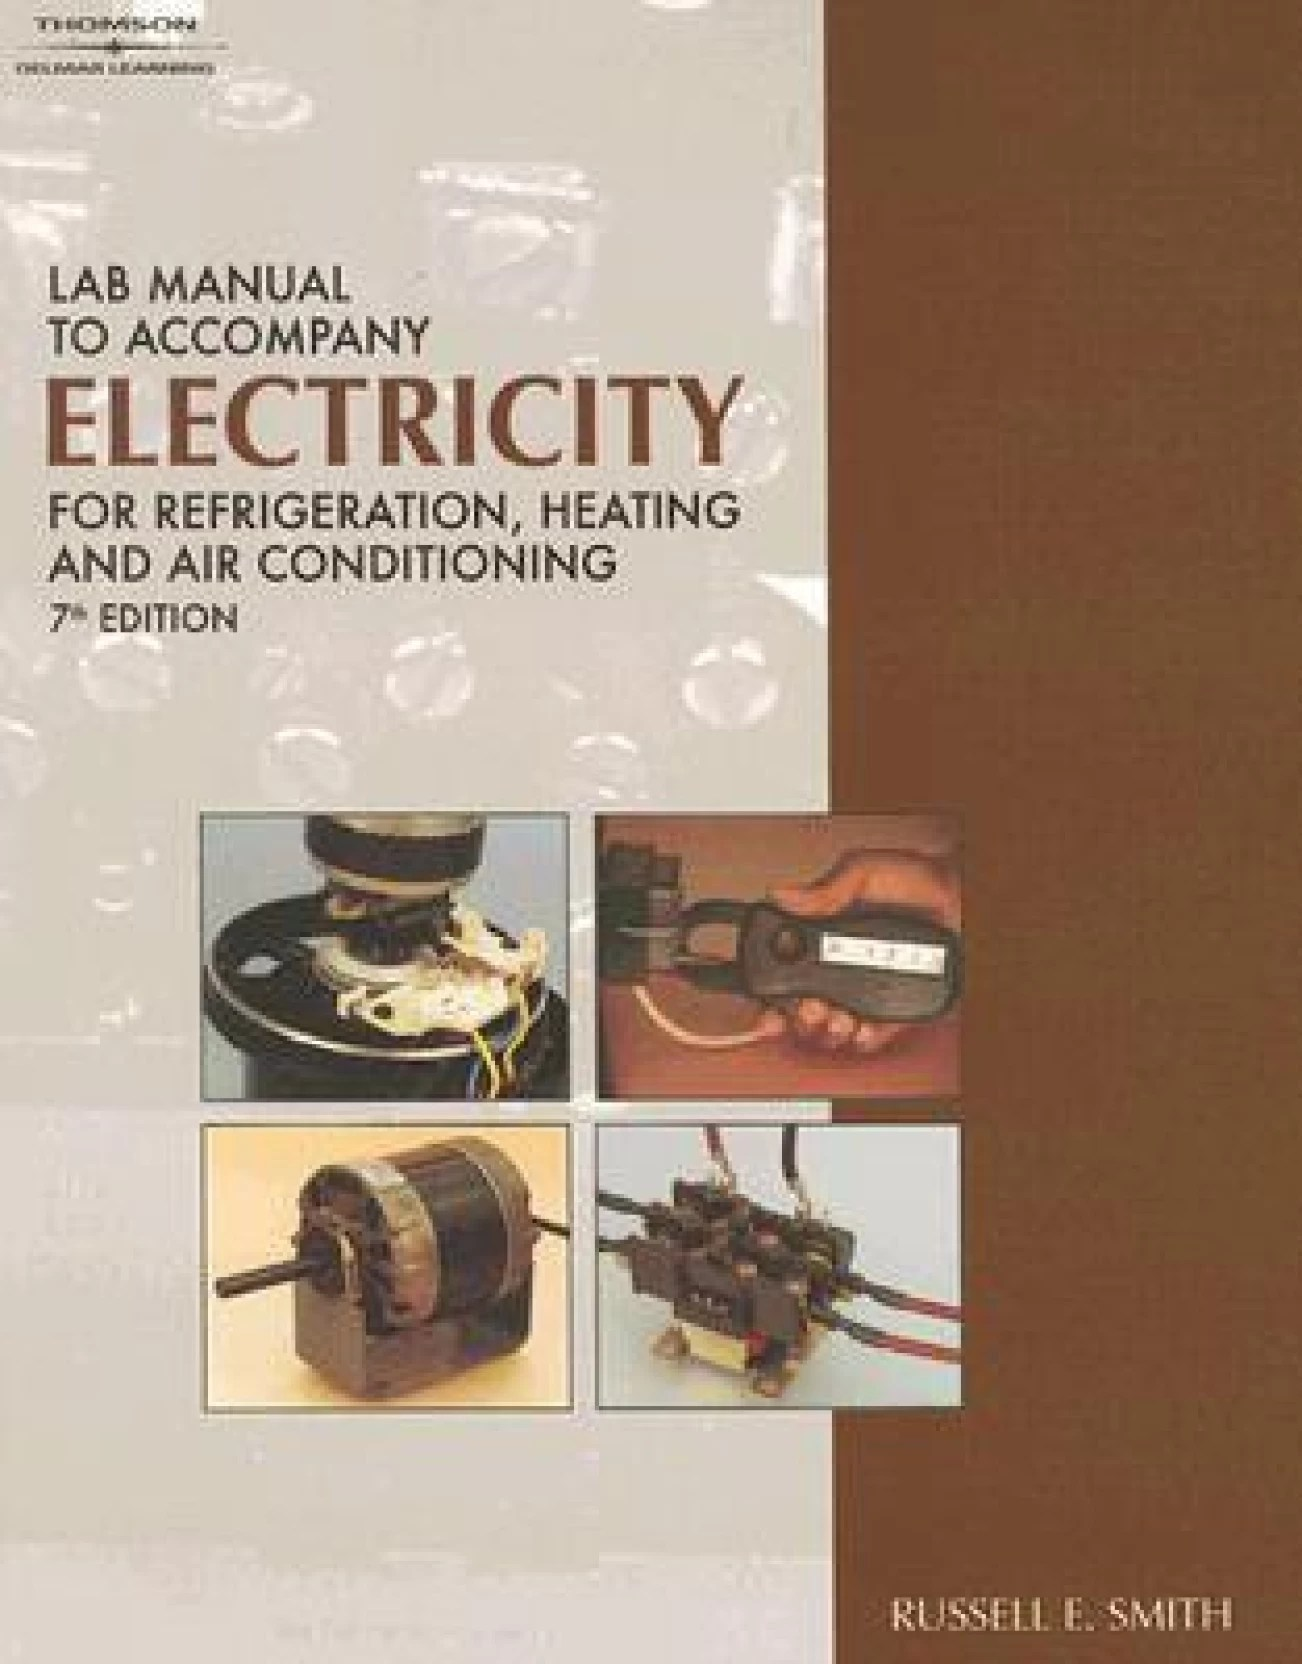 medium resolution of lab manual to accompany electricity for refrigeration heating and air conditioning english paperback russell e smith